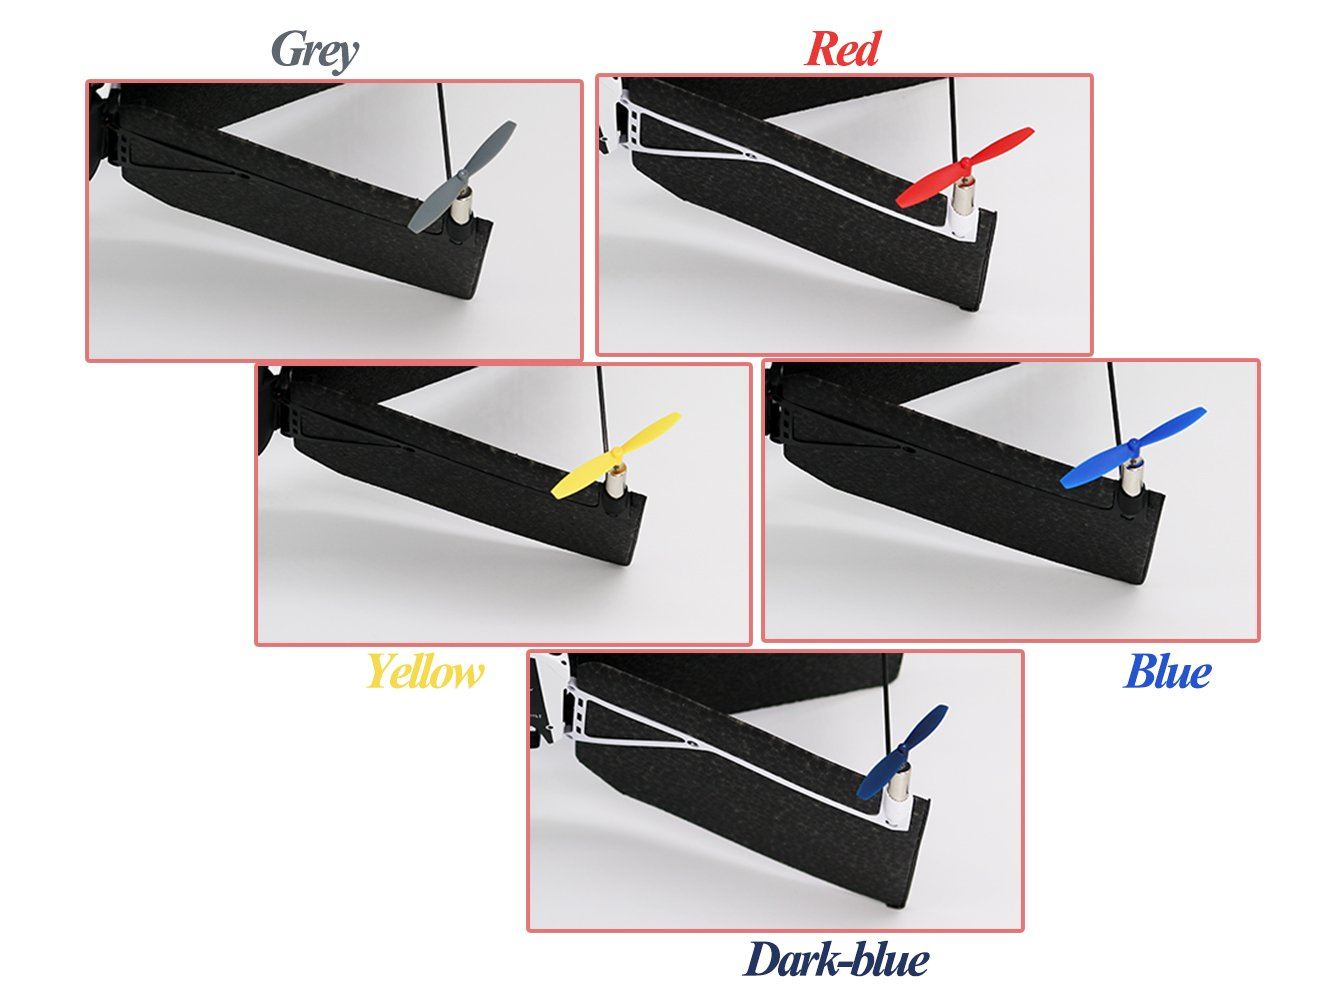 Colors: Blue//Red//White//Yellow//Black//Dark Blue//Grey Anbee 7 Colors Propellers Combo for Parrot Minidrones Rolling Spider Airborne Cargo /& Night Drone Hydrofoil Drone Mambo /& Swing Drone